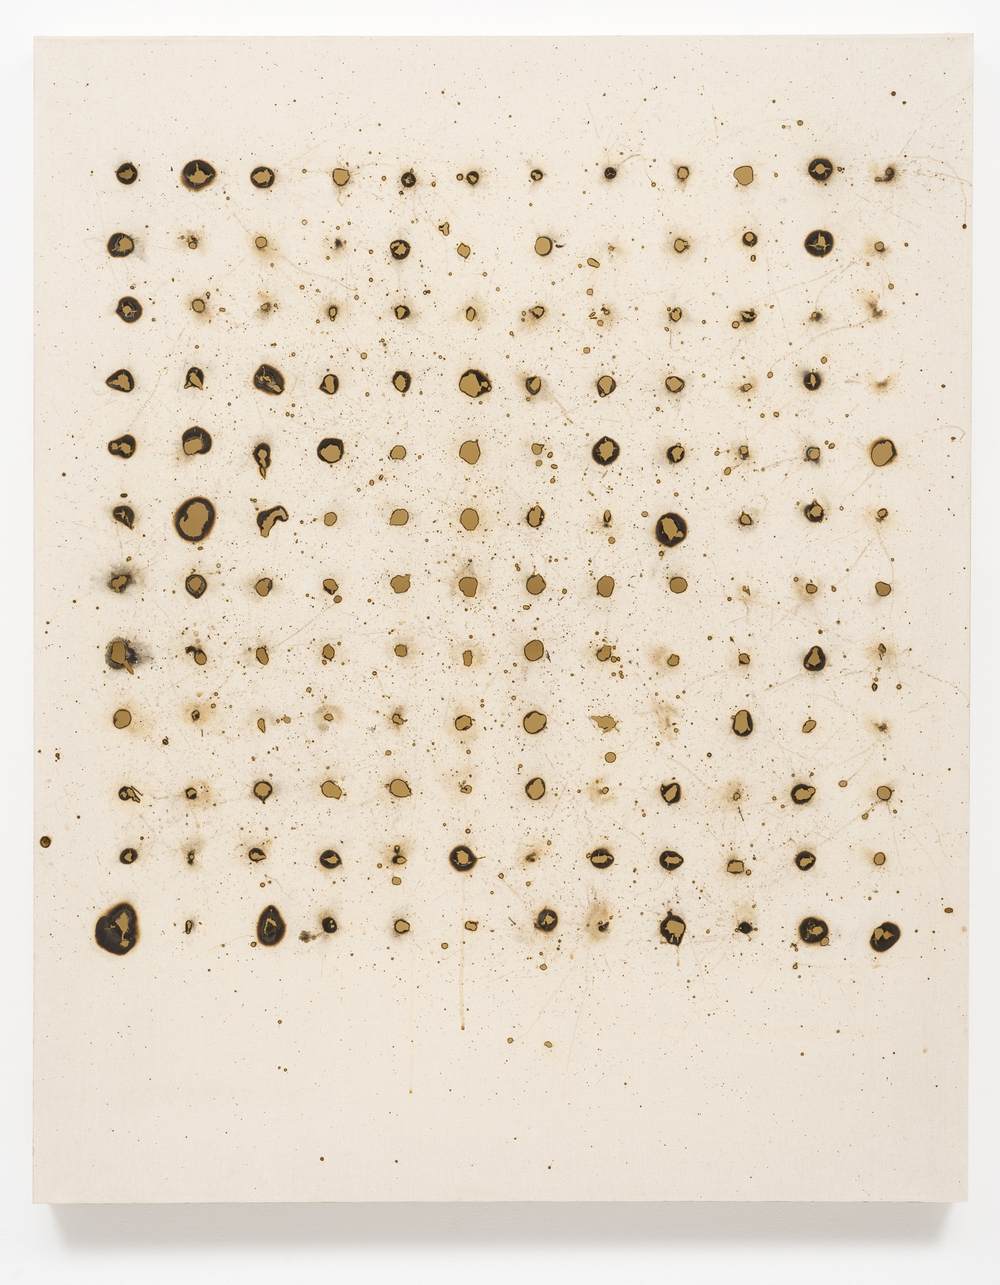 """Fence Mending"", 2015   Rabbit skin glue on canvas with welding burn holes   51"" H x 41"" W x 2.5"" D (129.54 cm H x 104.14 cm W x 6.35 cm D)"